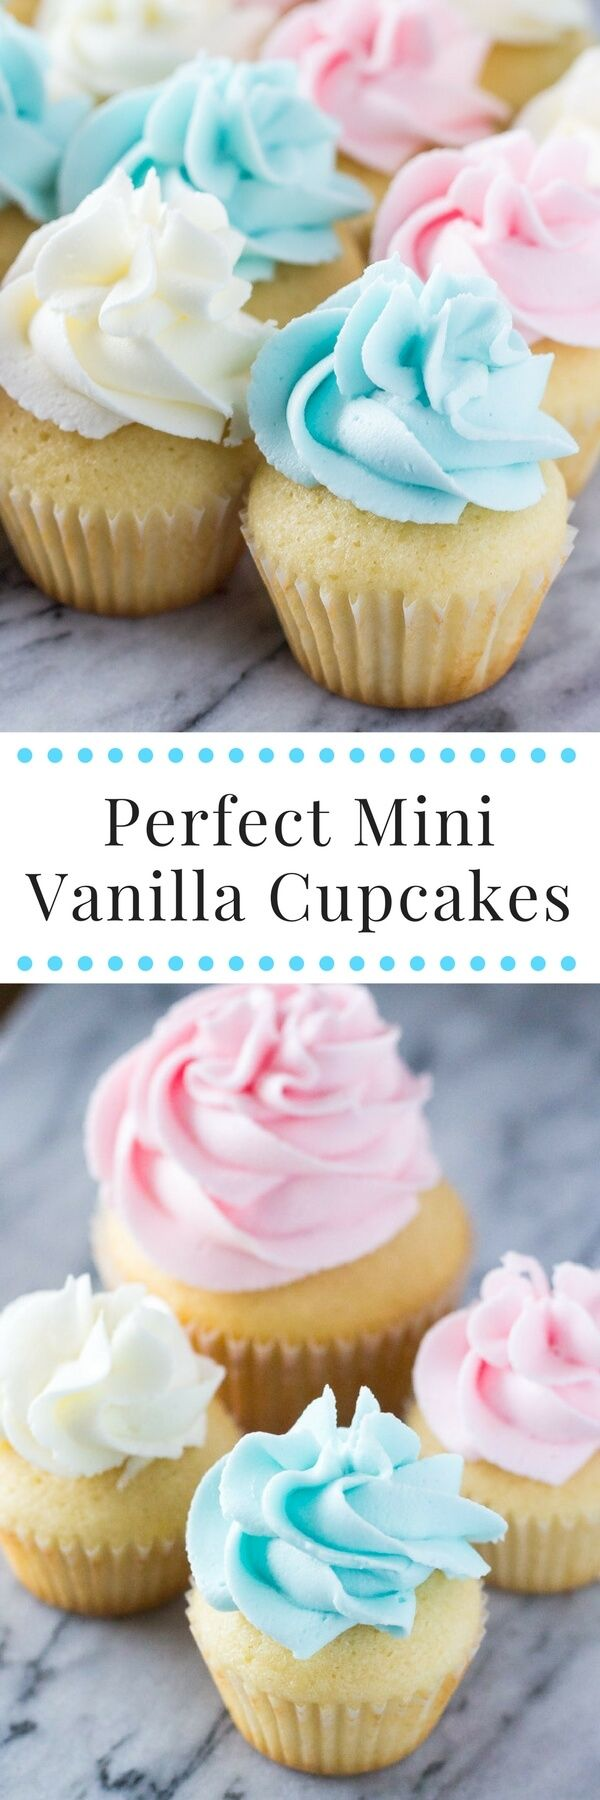 mini-vanilla-cupcakes-learn-all-the-tricks-for-making-fluffy-super-moist-mini-cupcakes-topped-with-vanilla-buttercream-www-justsotasty-com